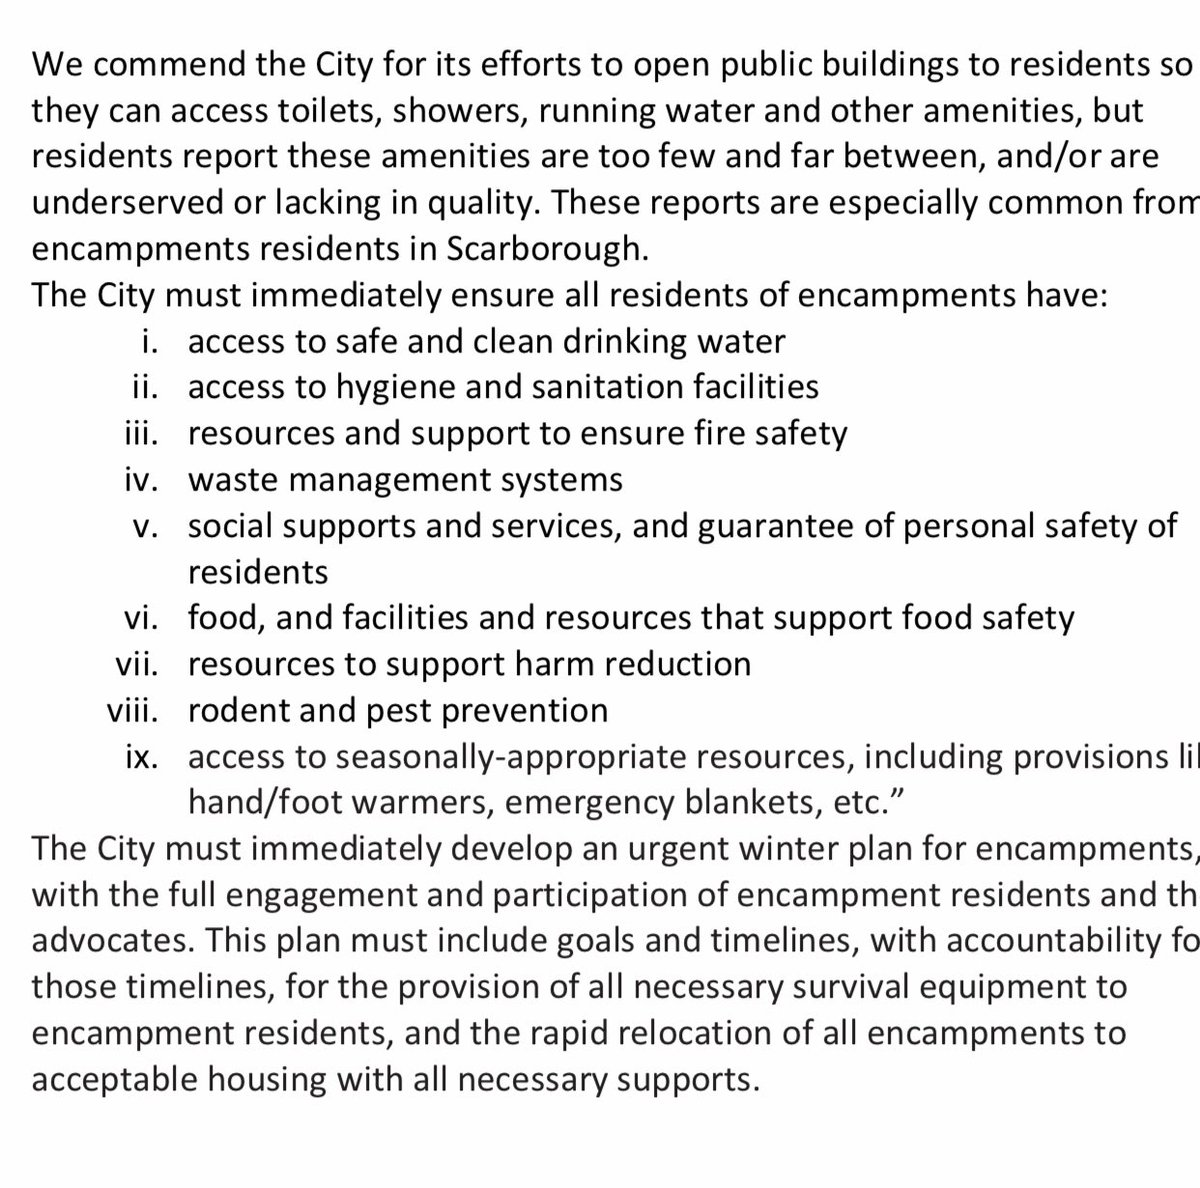 @AbeOudshoorn @homelesshub Yes we have and it is an important report. In particular: